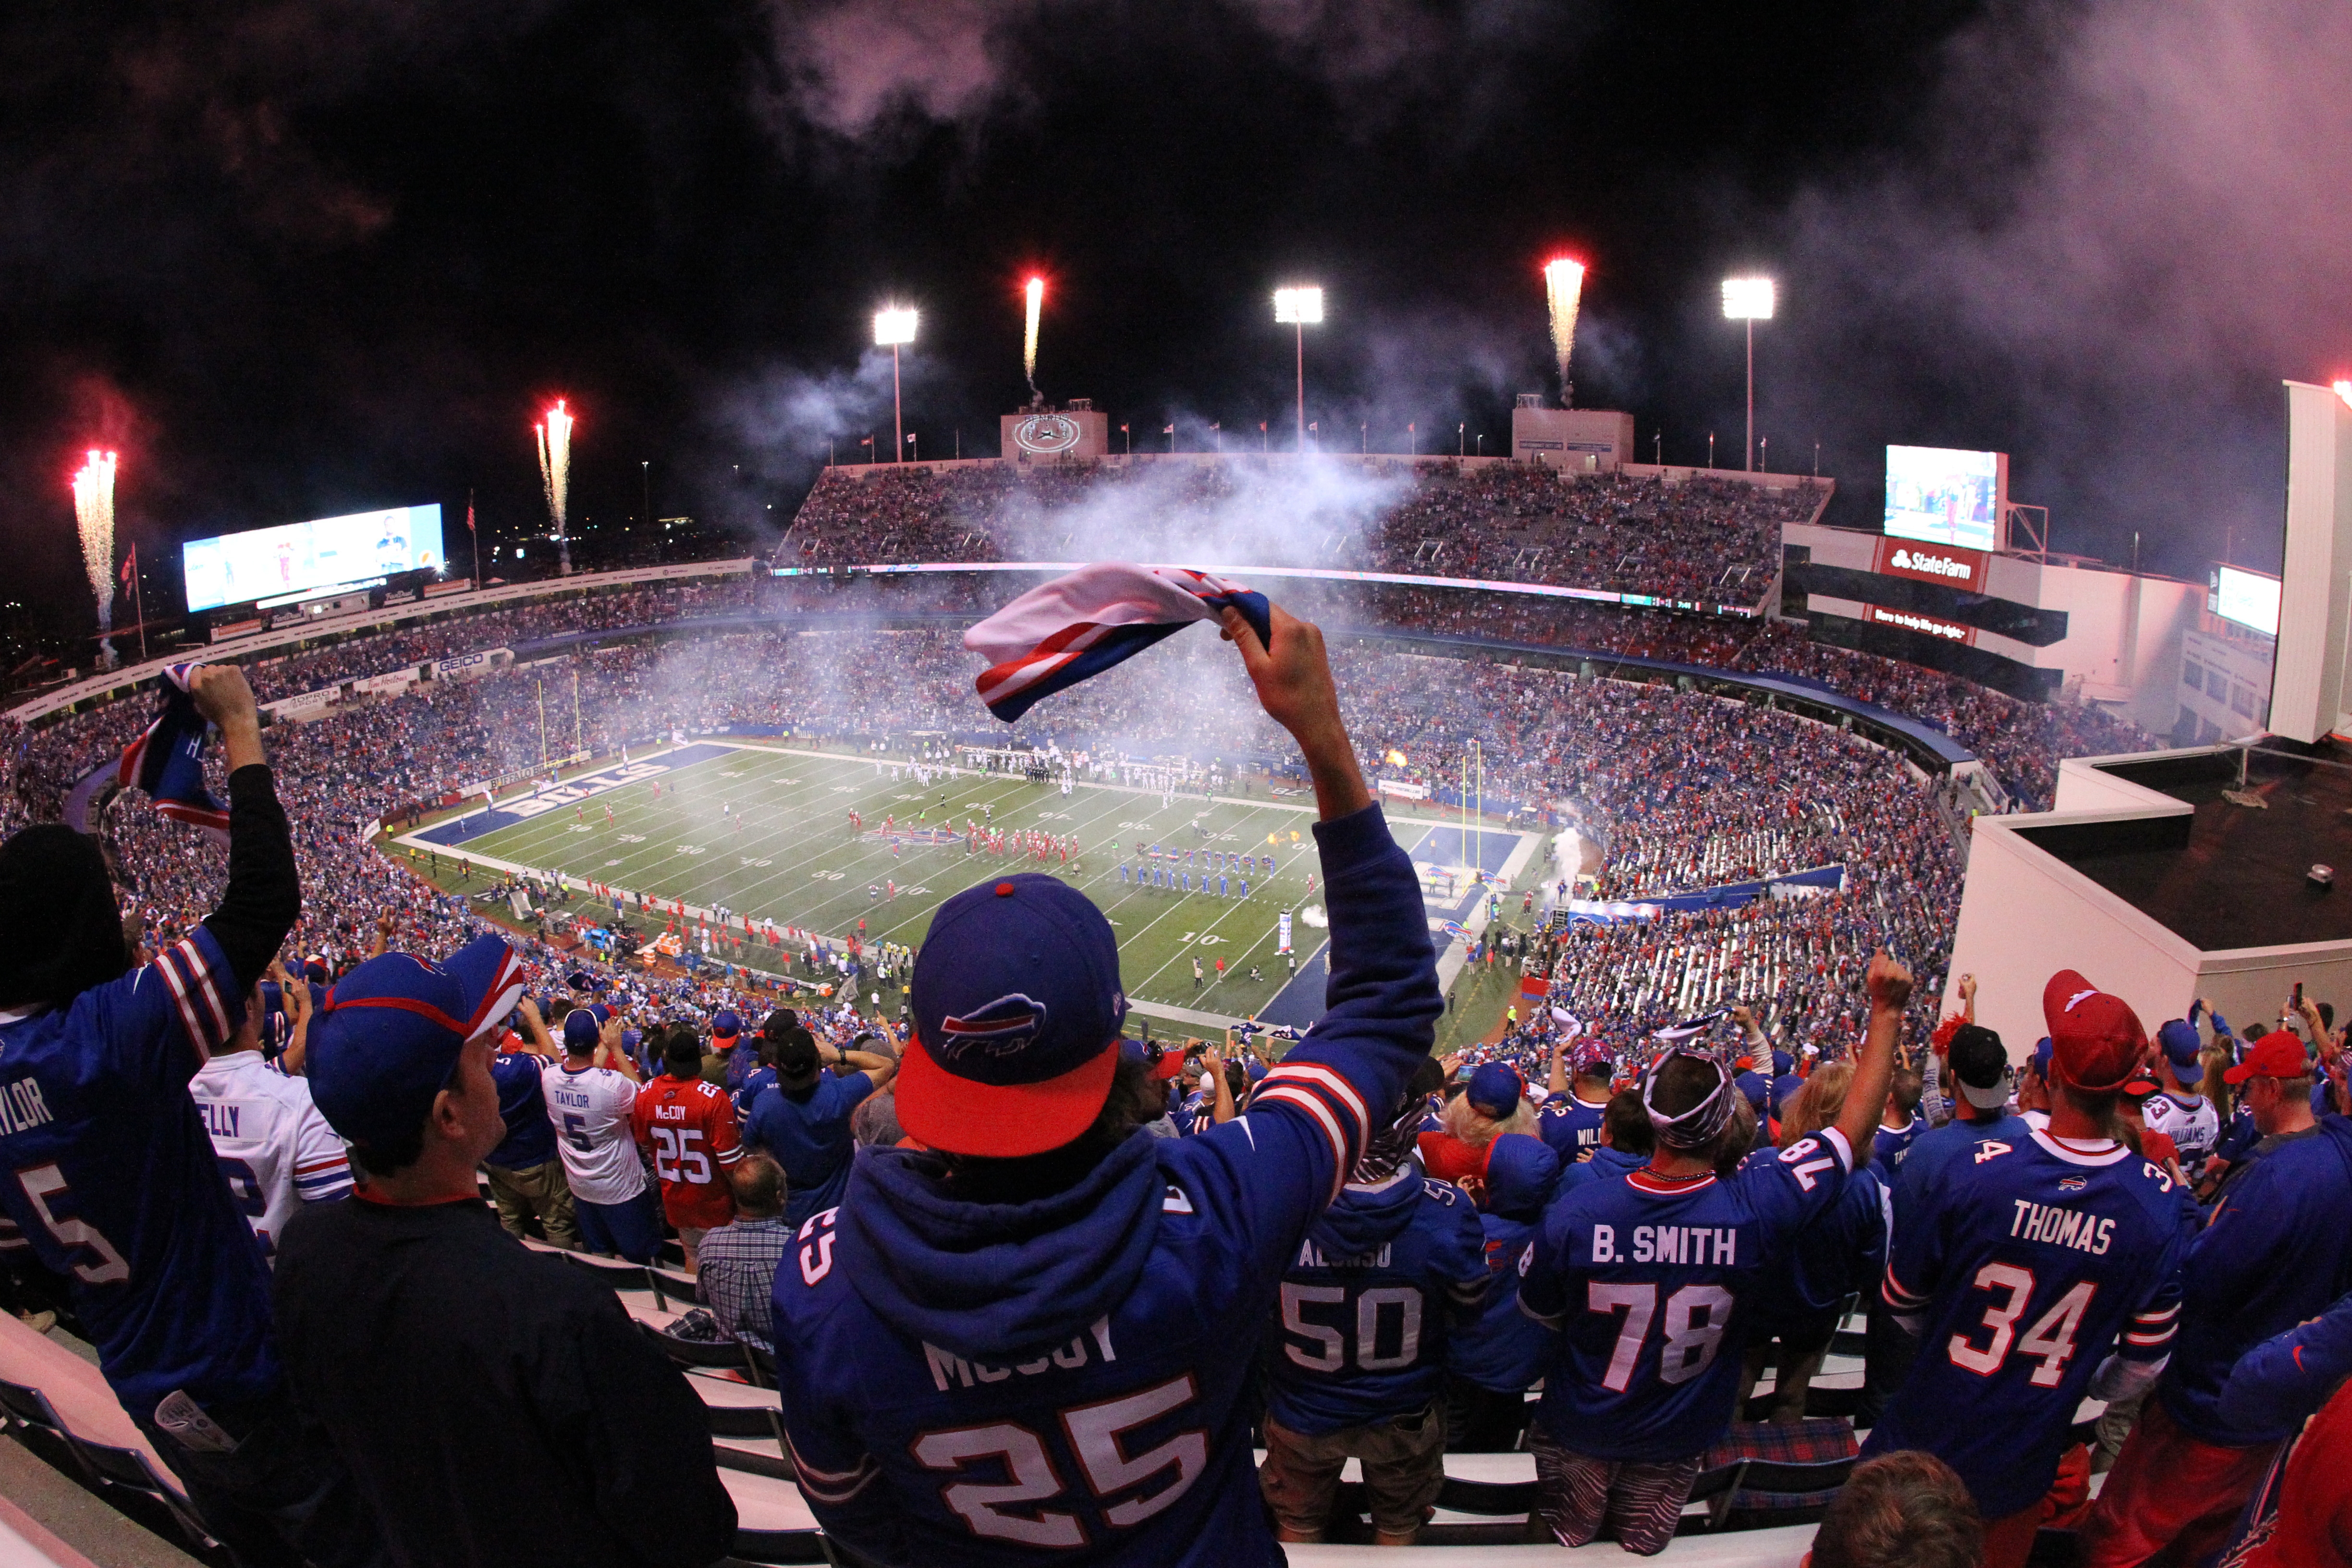 Bills fans cheer as their team takes the field for the Jets game at New Era Field.